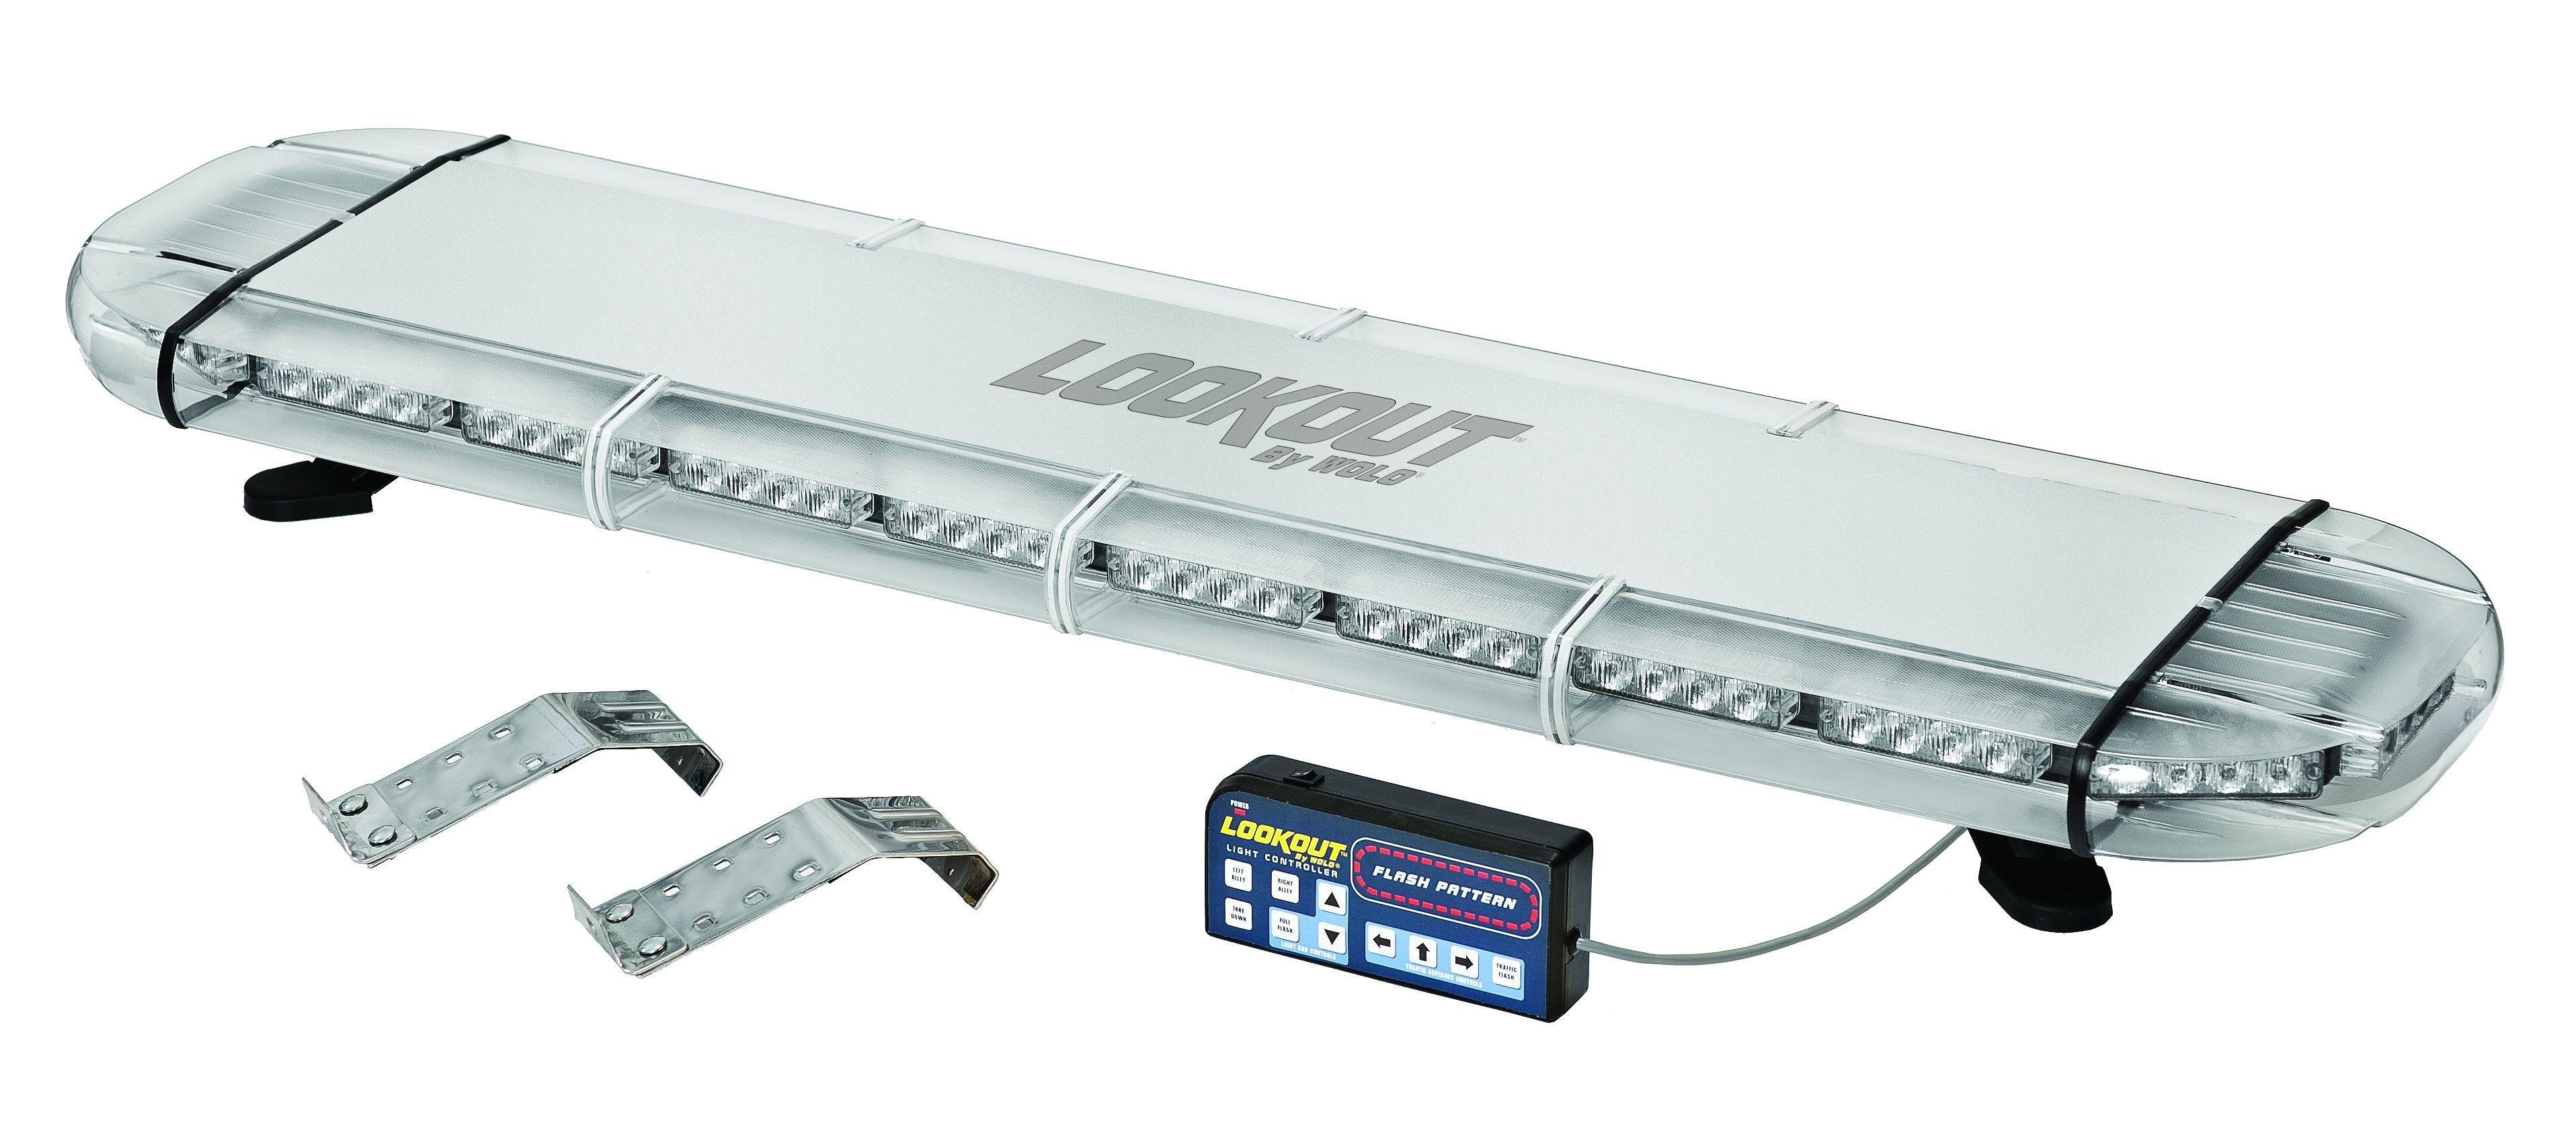 Whelen Liberty Lightbar Wiring Diagram 38 Images Light Bar Ef53bc95 Cee3 460a 8f02 69d85015396e For Efcaviation Com